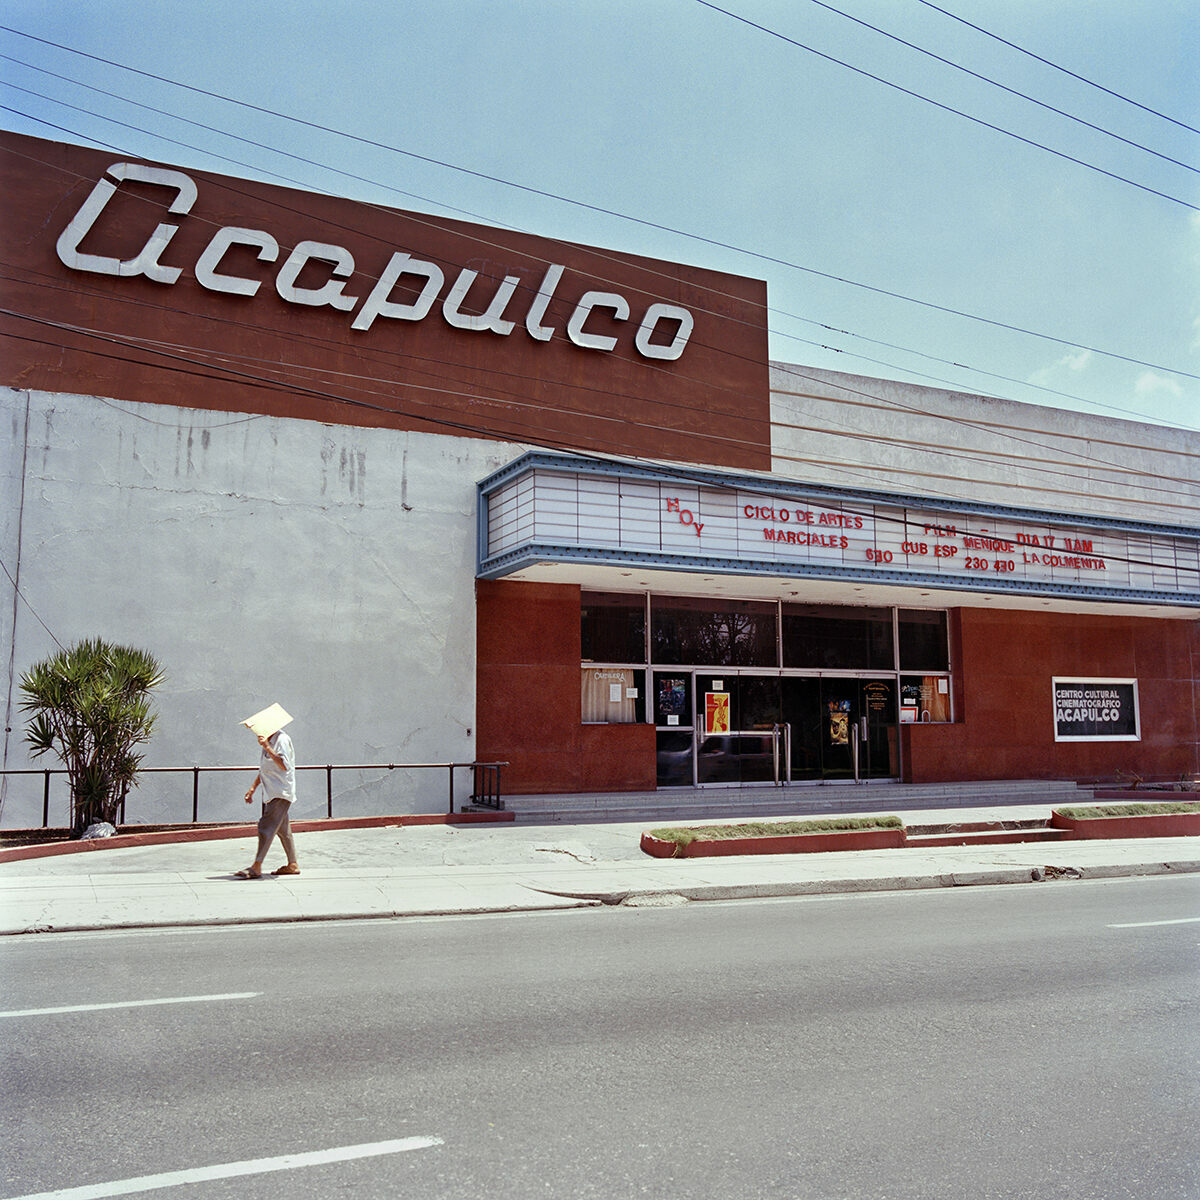 Cine Acapulco, Havana. This 1500-seat cinema opened in 1958 and still functions today.